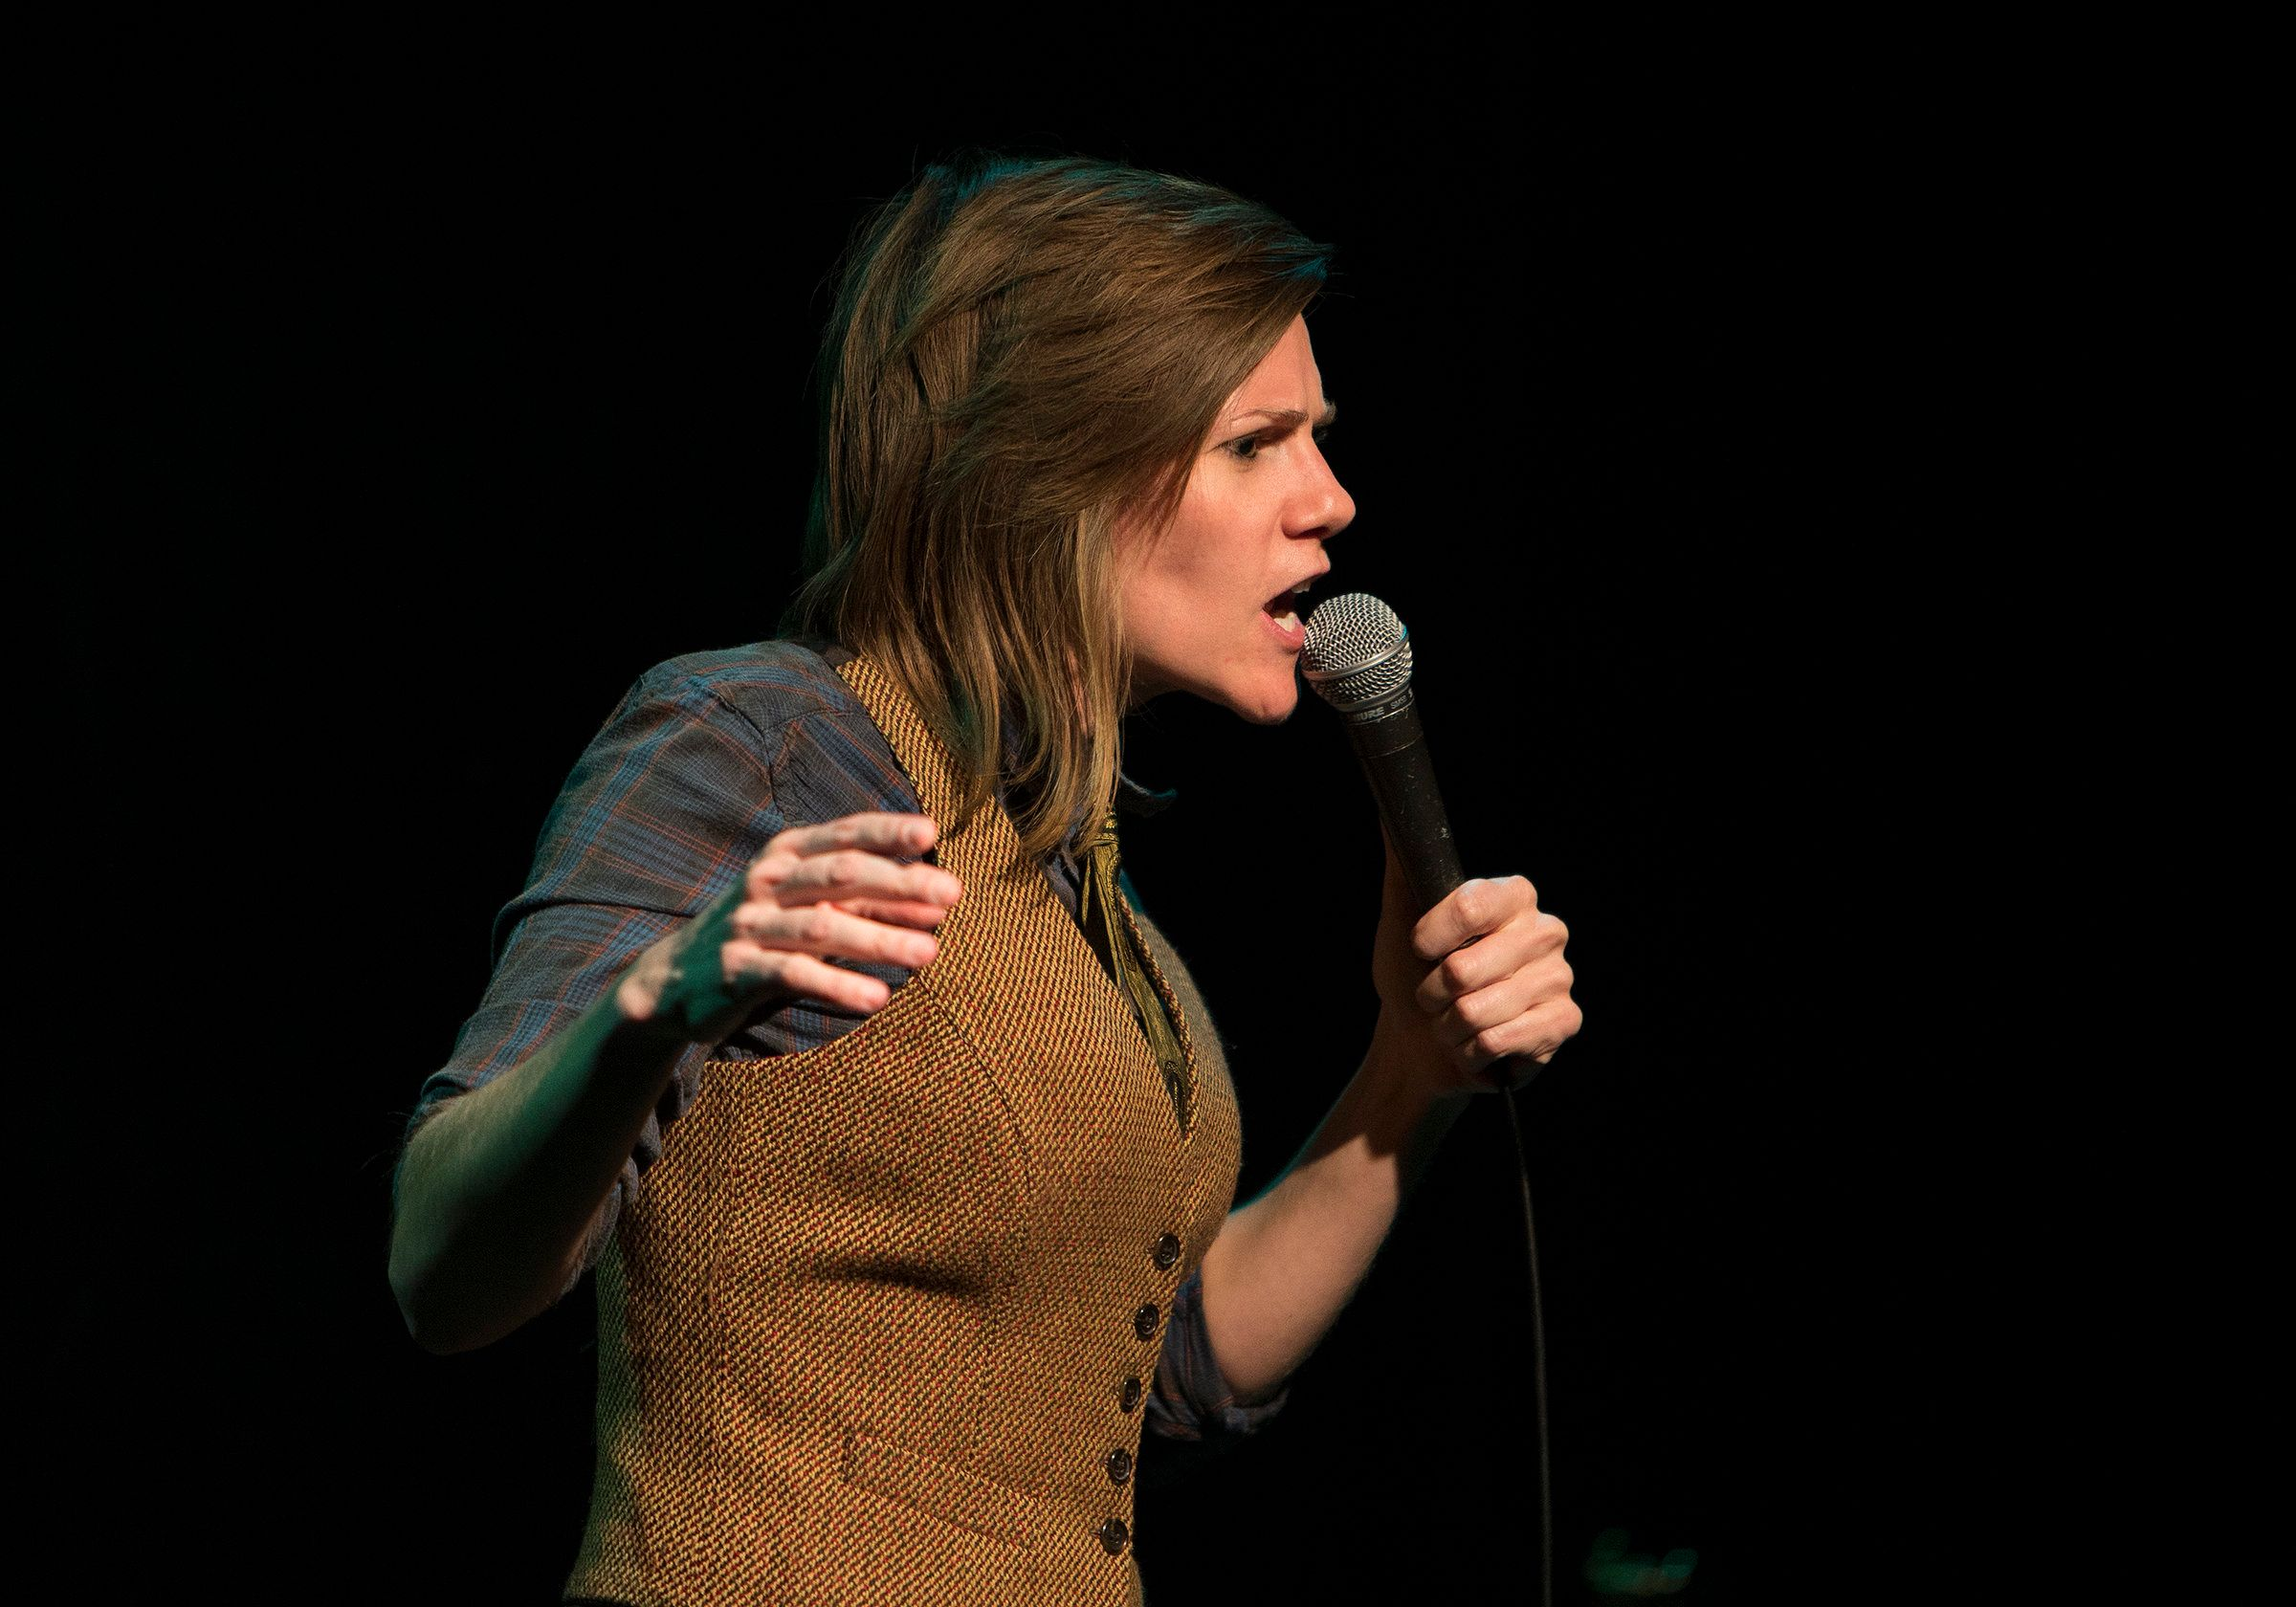 LOS ANGELES, CA - OCTOBER 7, 2014: Chicago stand-up comic Cameron Esposito  performs in a small intimate setting at the Upright Citizens Brigade Theater on October 7, 2014 in Los Angeles, California. Cameron moved to Los Angeles a couple of years ago.  (Photo by Gina Ferazzi/Los Angeles Times via Getty Images)